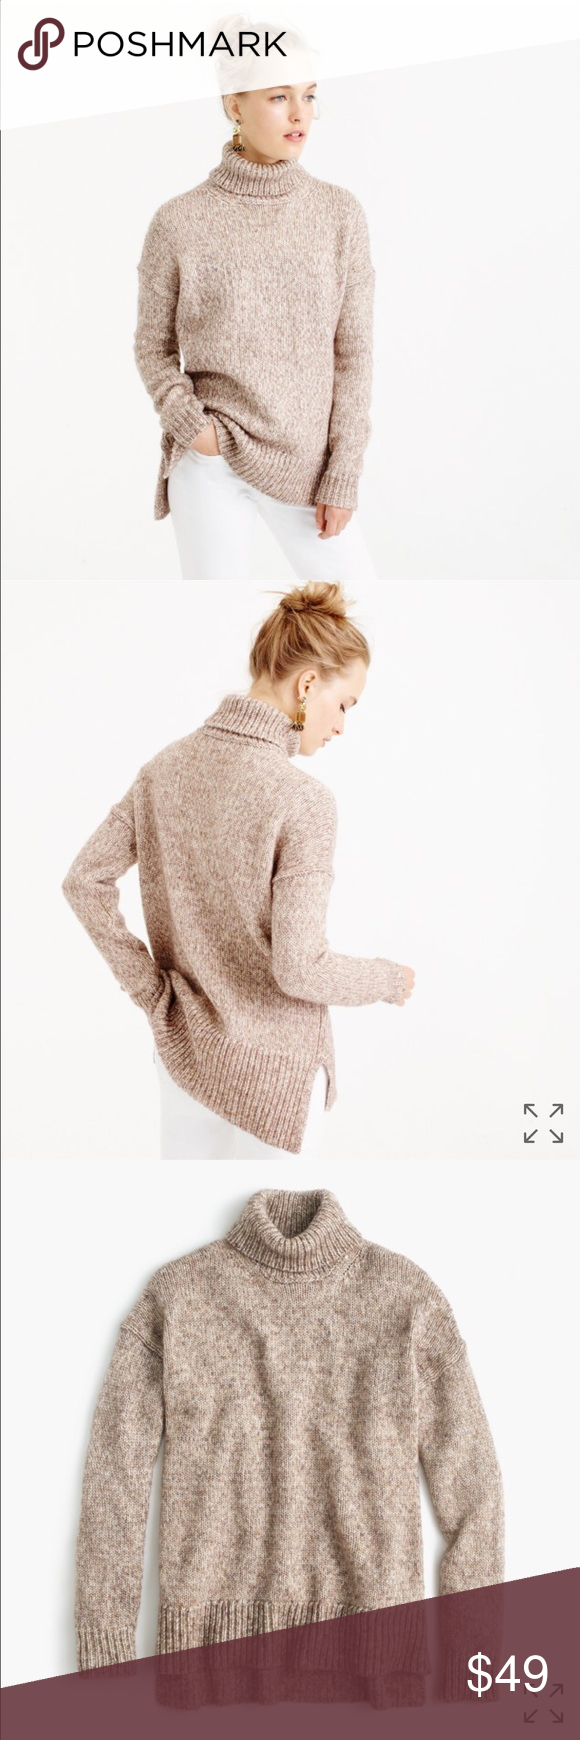 J. Crew Italian Wool Blend Tan Marled Turtleneck J. Crew Italian Wool Blend Tan Marled Turtleneck. Size Large.  Sadly, I'm re-poshing this one.  The tag says large but this runs big!  It's a beautiful, thick, cozy sweater but too big for me.  I was hoping for the oversized look like the model pic, but it was even bigger than that on me 😕. Still has tags on it. Make me an offer 😉 J. Crew Sweaters Cowl & Turtlenecks